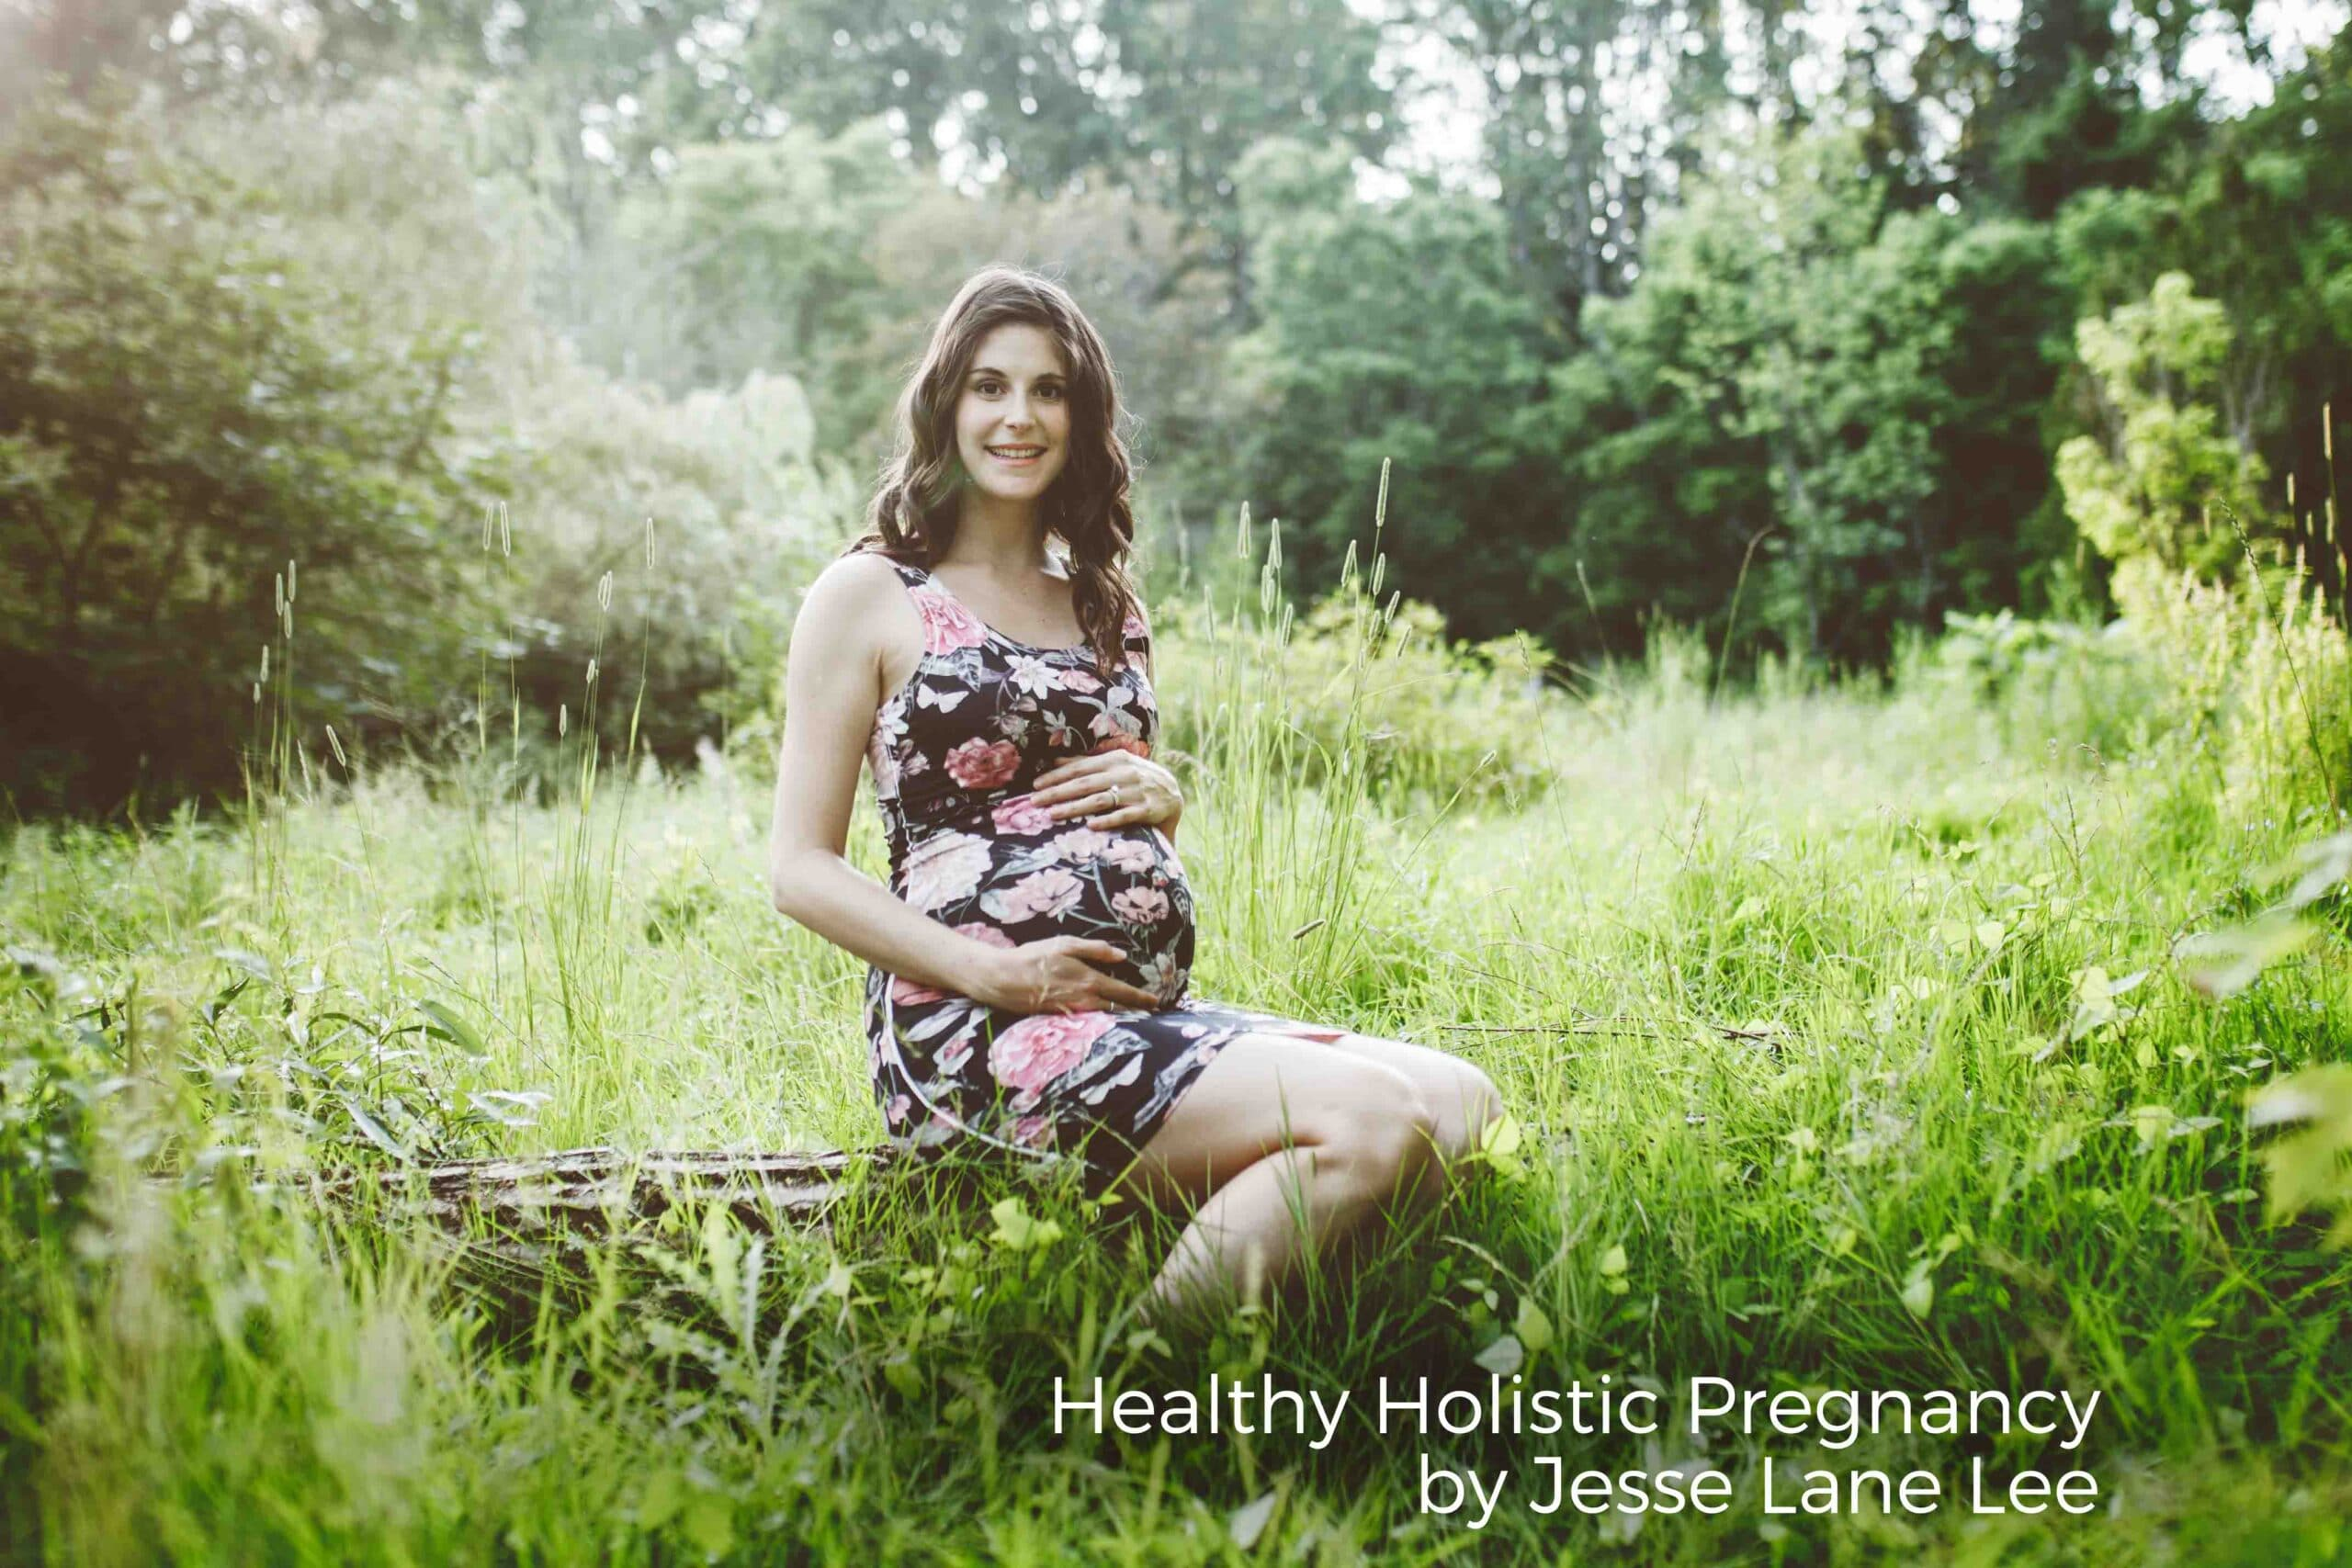 Healthy Holistic Pregnancy by @jesselwellness #holisticpregnancy #pregnancylife